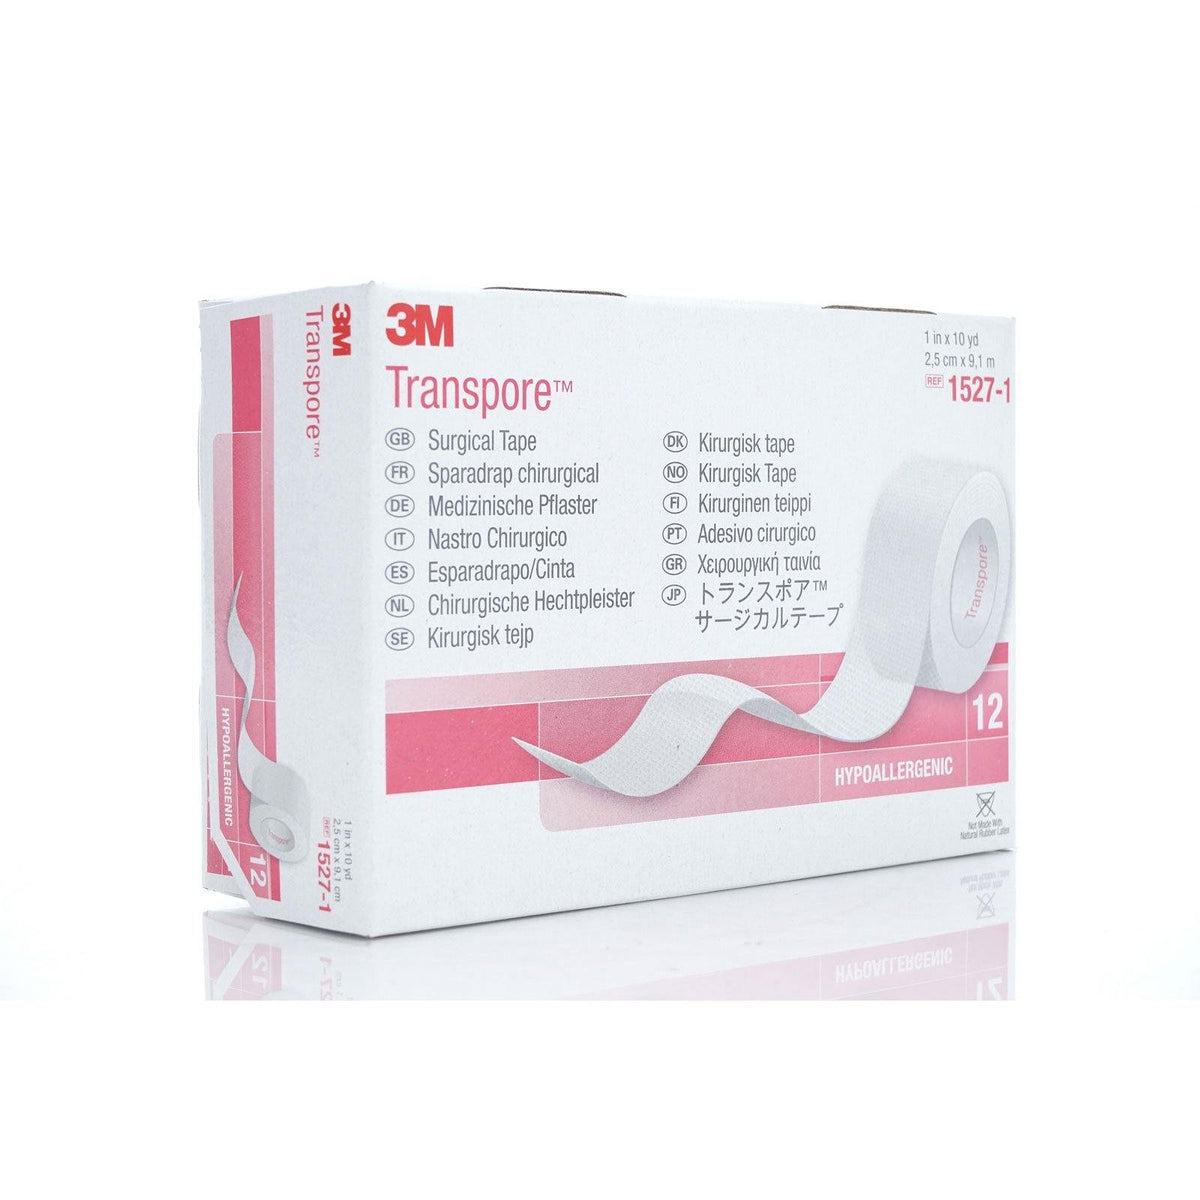 "3M Transpore Surgical Tape, 1"" x 10 yards (10/cs)"